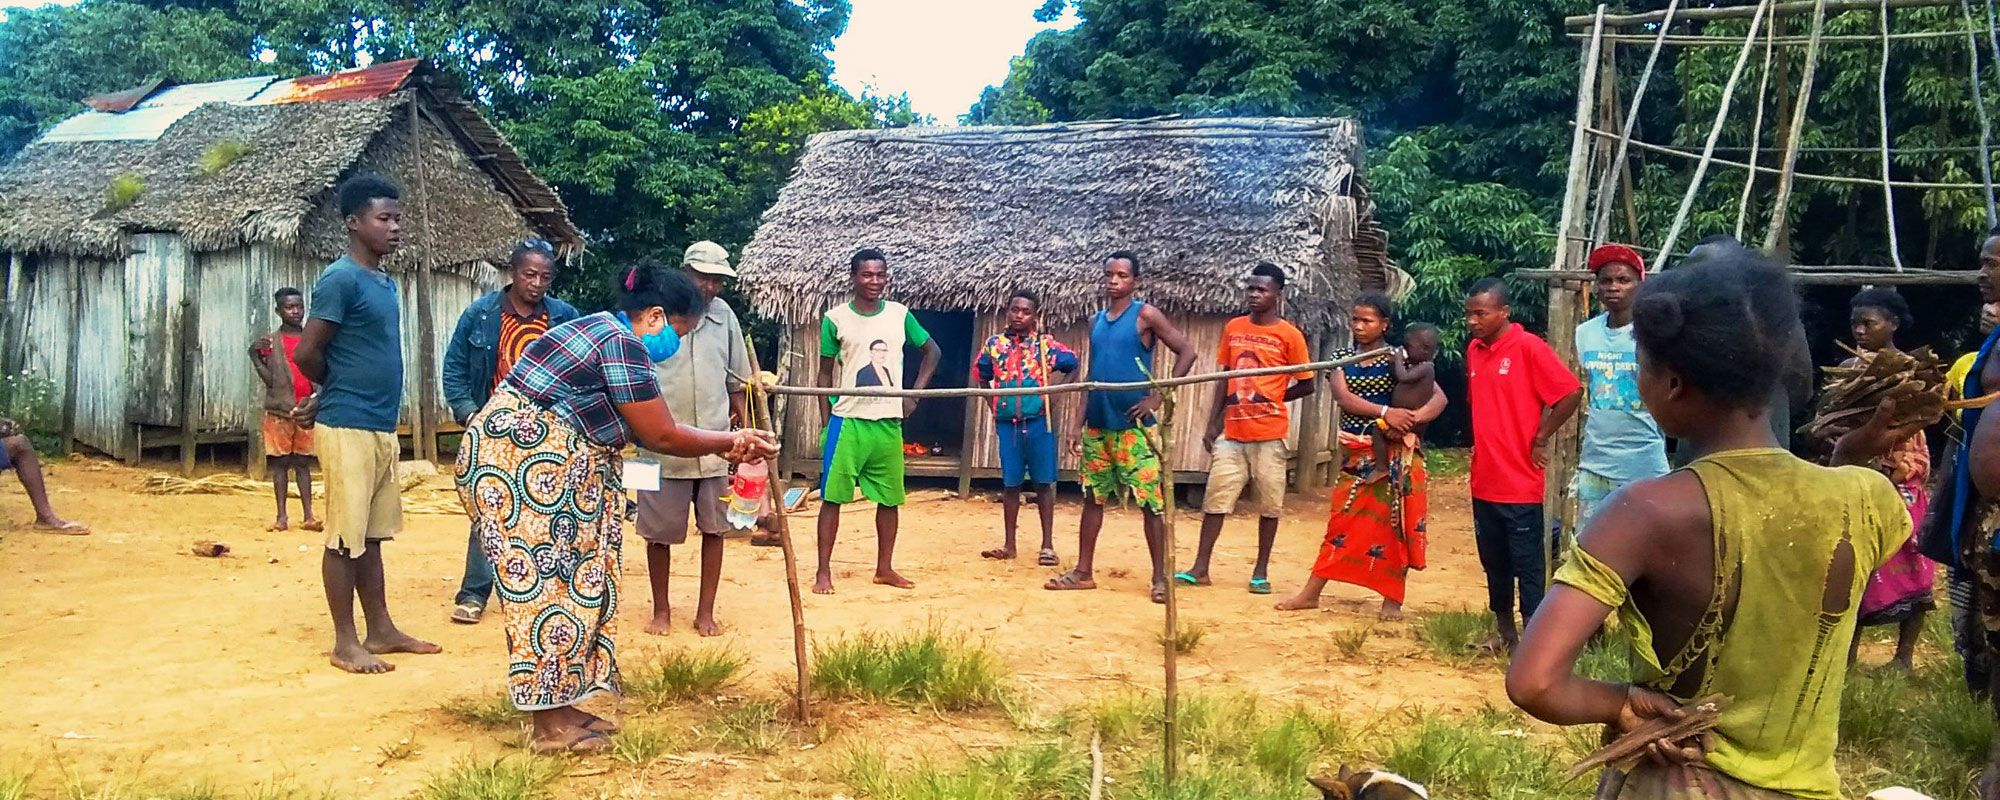 A rural sanitation session in progress in remote Anosy region southeast Madagascar